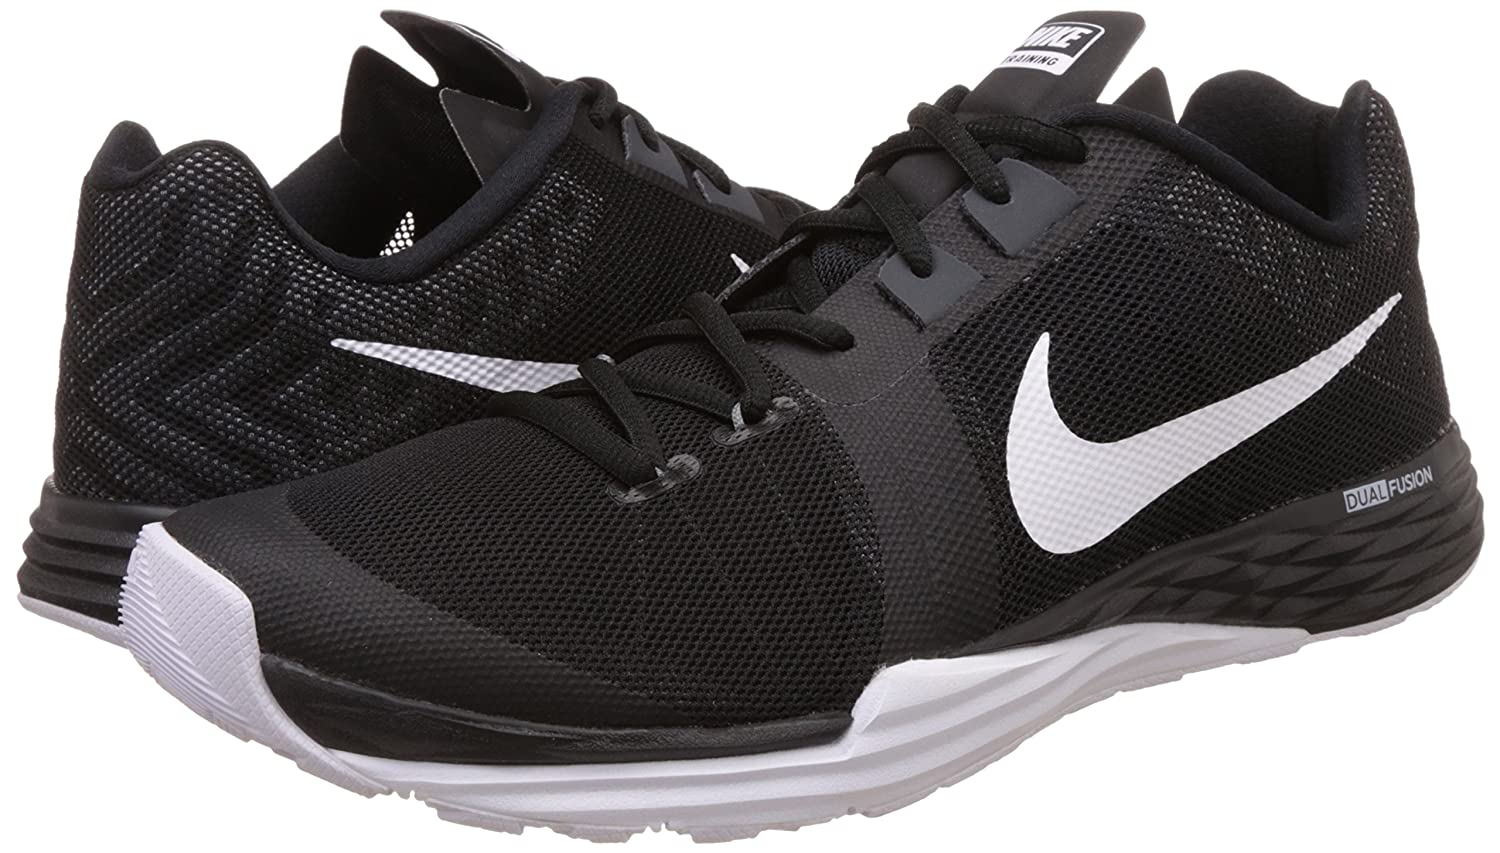 NIKE Men's Train Prime Iron DF Cross Trainer US|Black/White/Anthracite/Cool Shoes B014GMXMQ6 11 D(M) US|Black/White/Anthracite/Cool Trainer Grey 333331